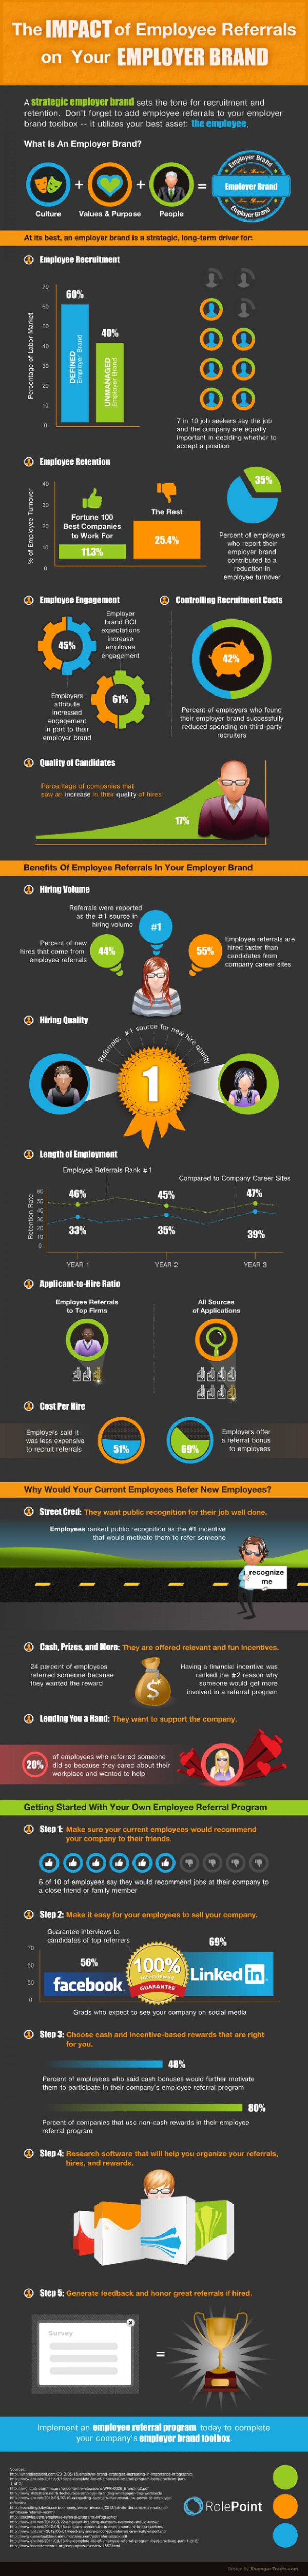 The Impact  of Employee Referrals on Your Employer Brand Infographic